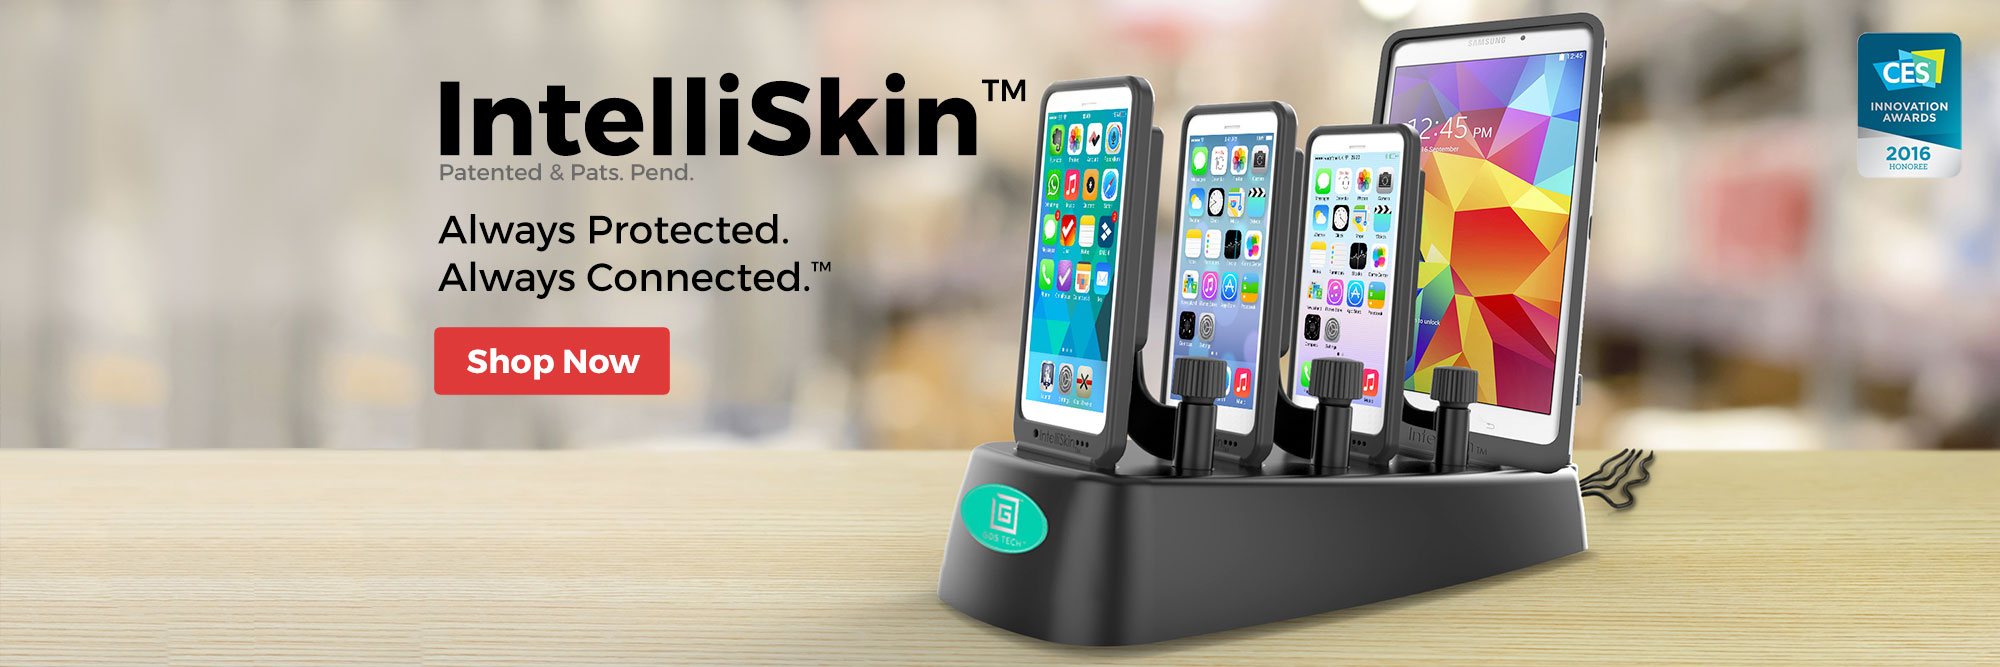 Intelliskin Cases with GDS Docks